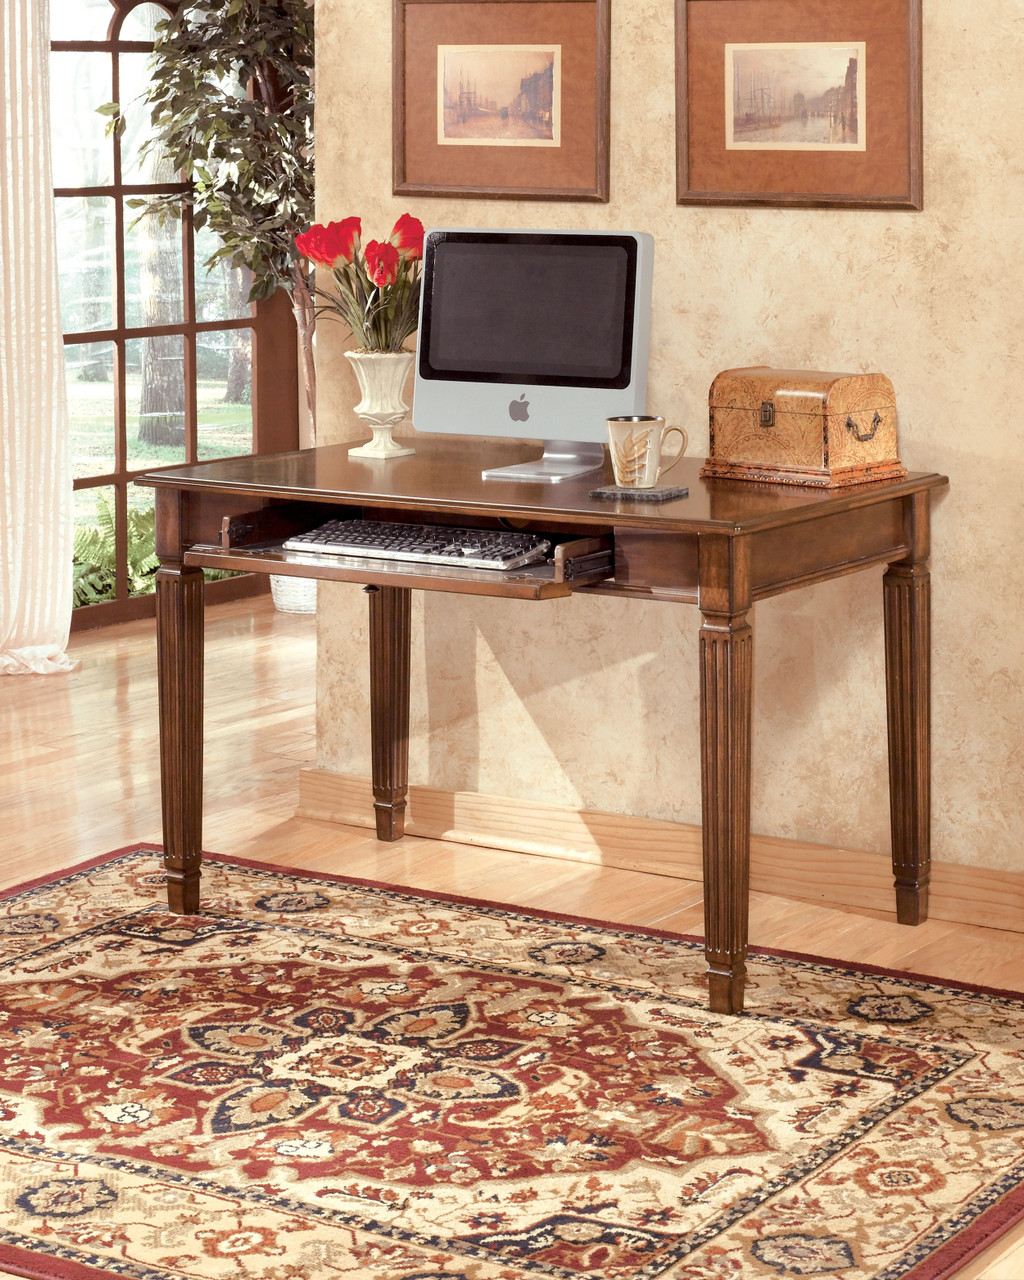 Hamlyn Medium Brown Home Office Small Leg Desk On Sale At American Furniture Of Slidell Serving Slidell La